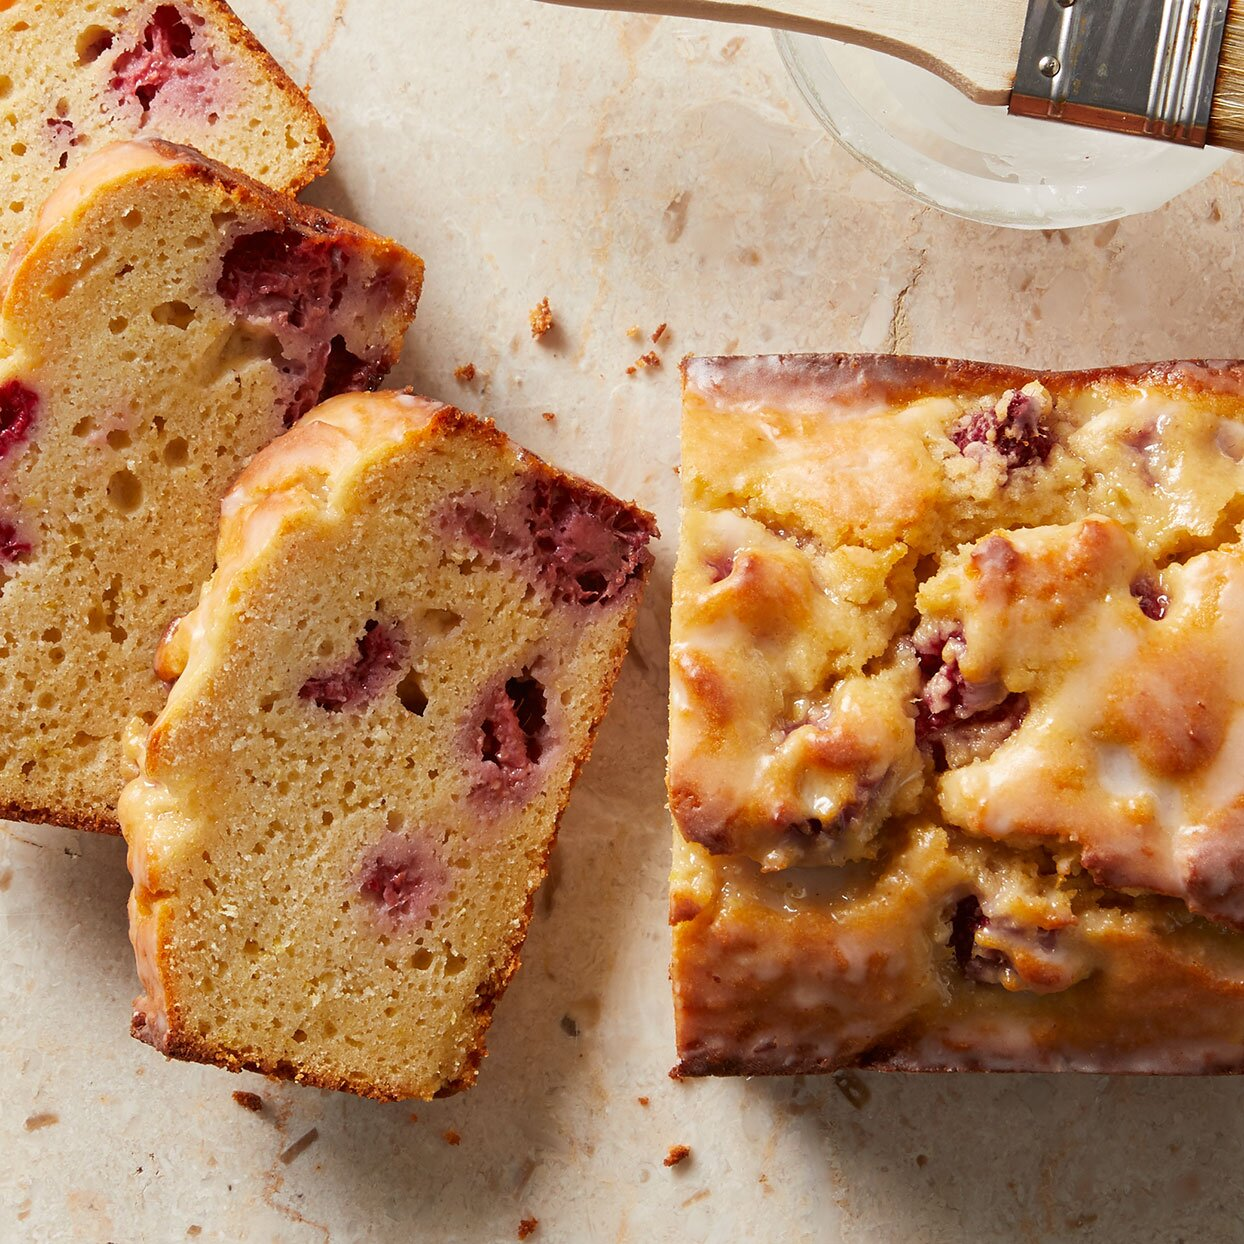 Lemon-Raspberry Ricotta Pound Cake